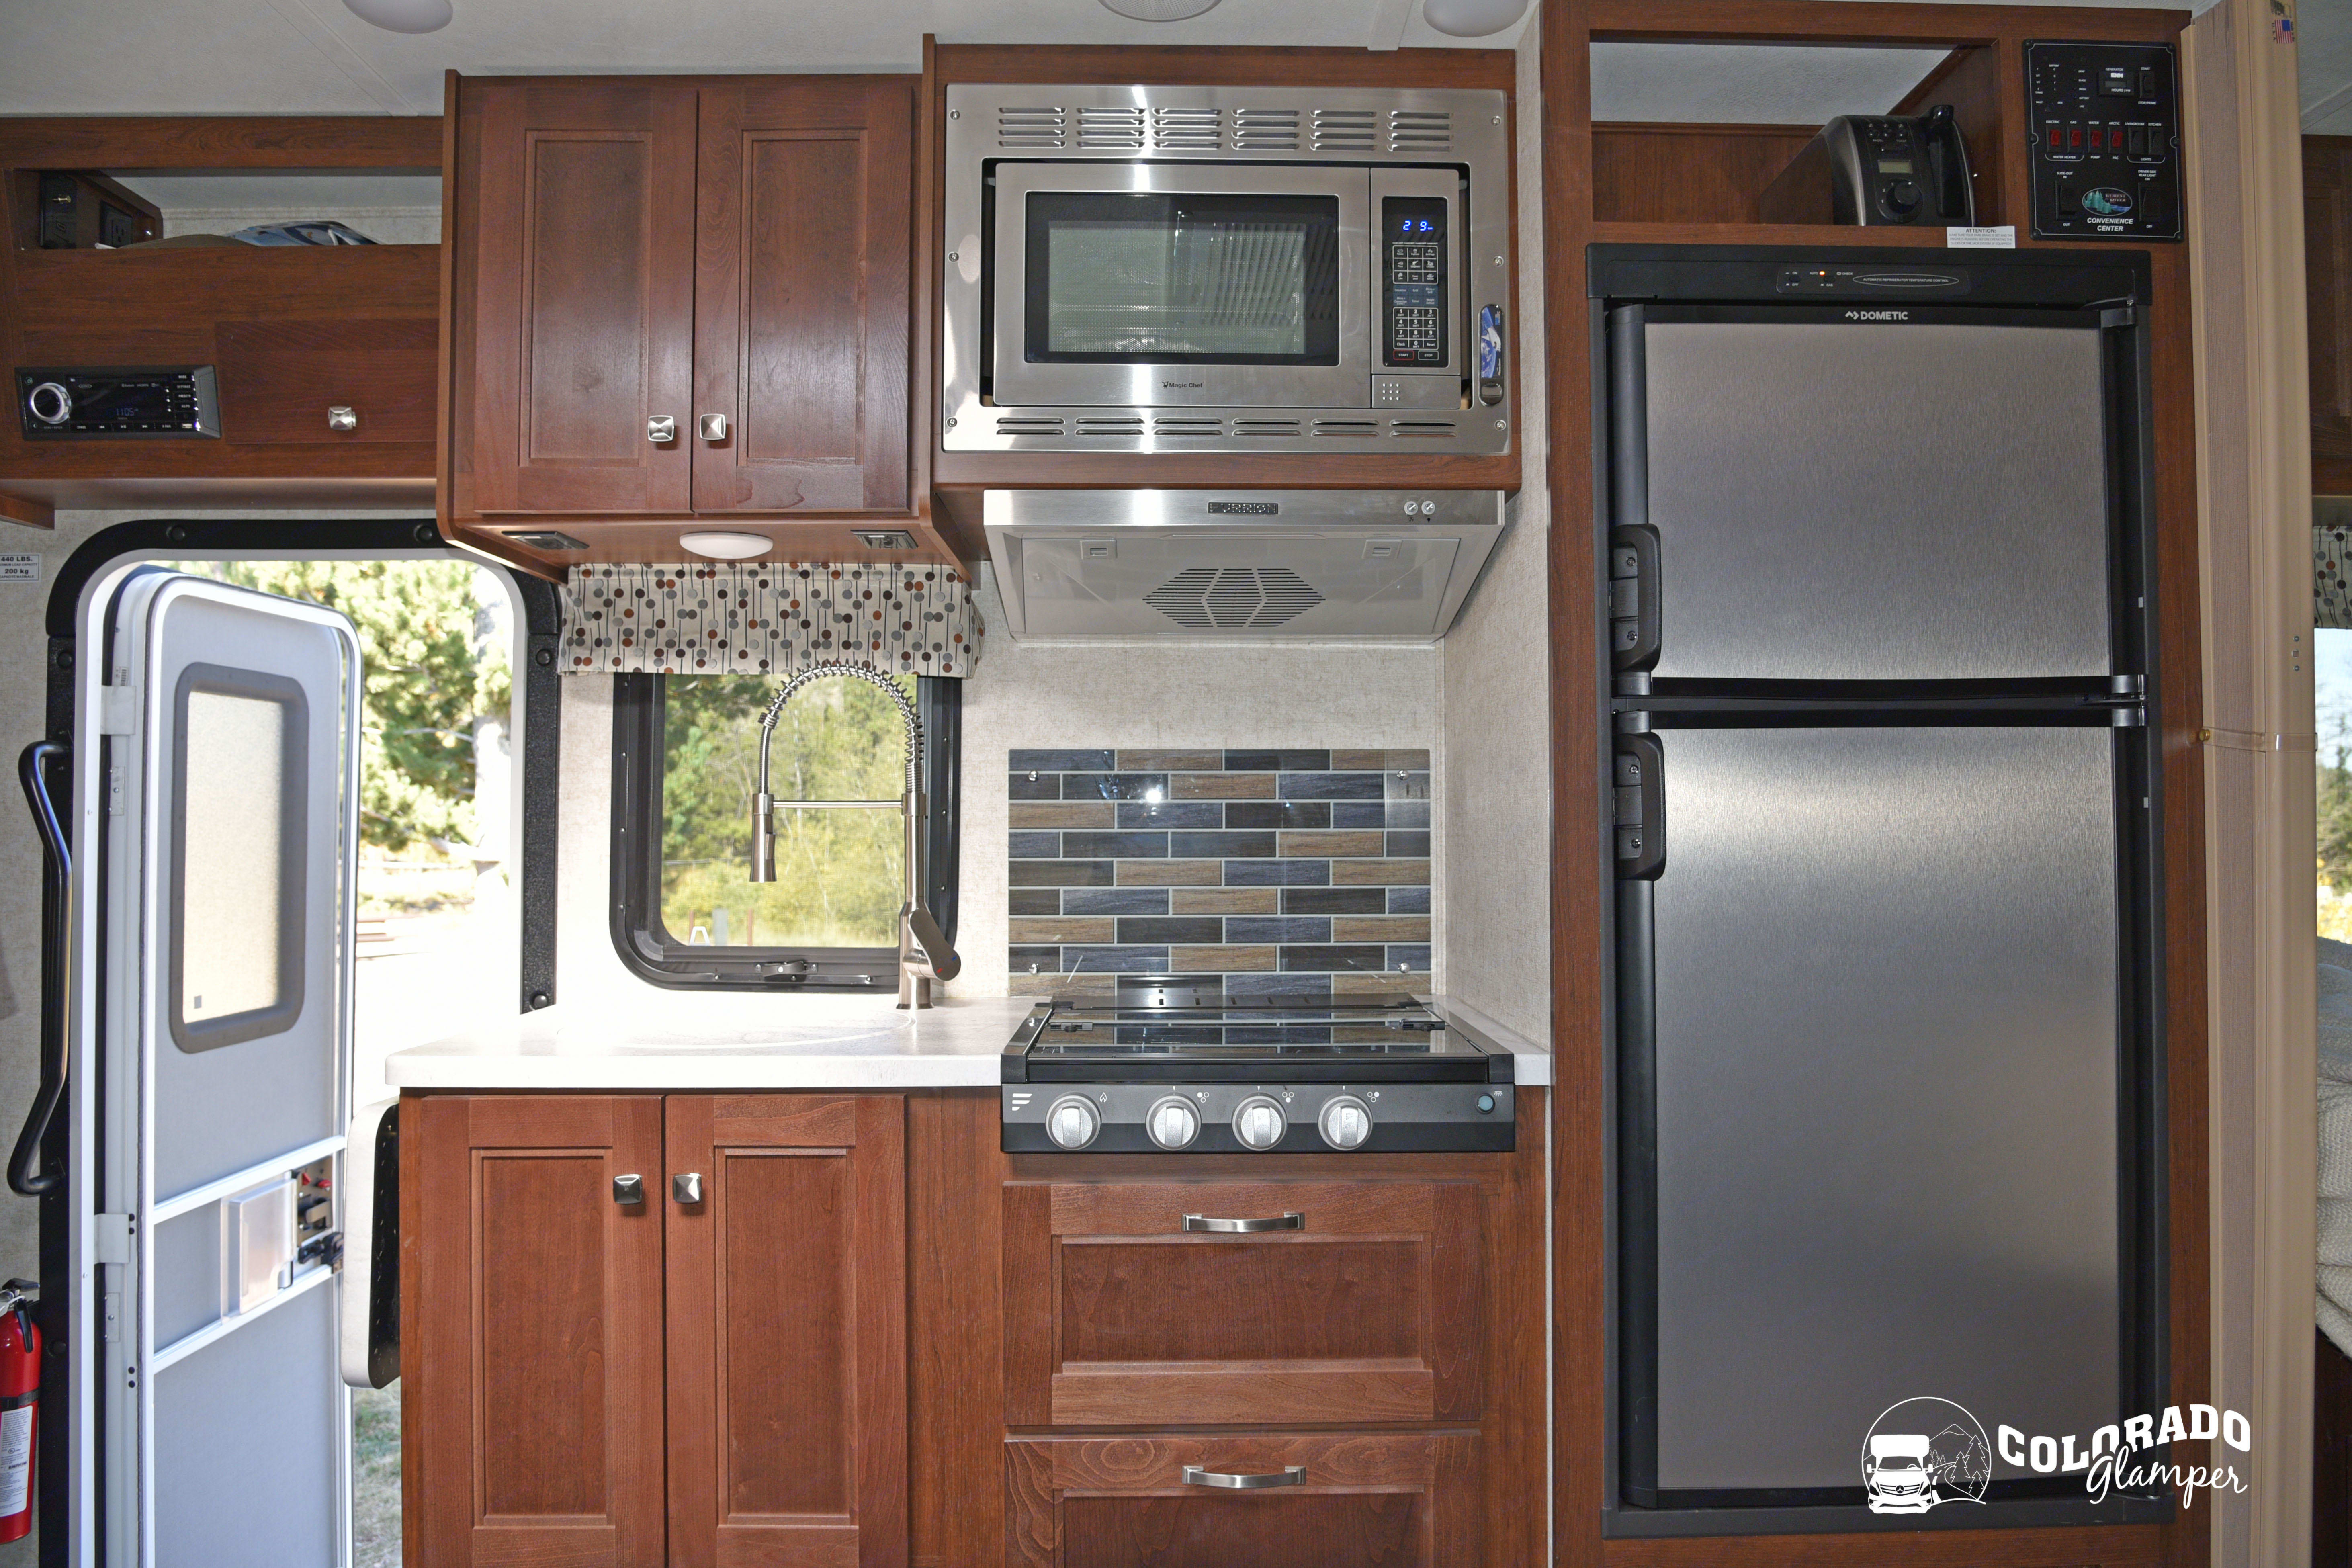 Fridge runs off electric or propane. Forest River Sunseeker 2019